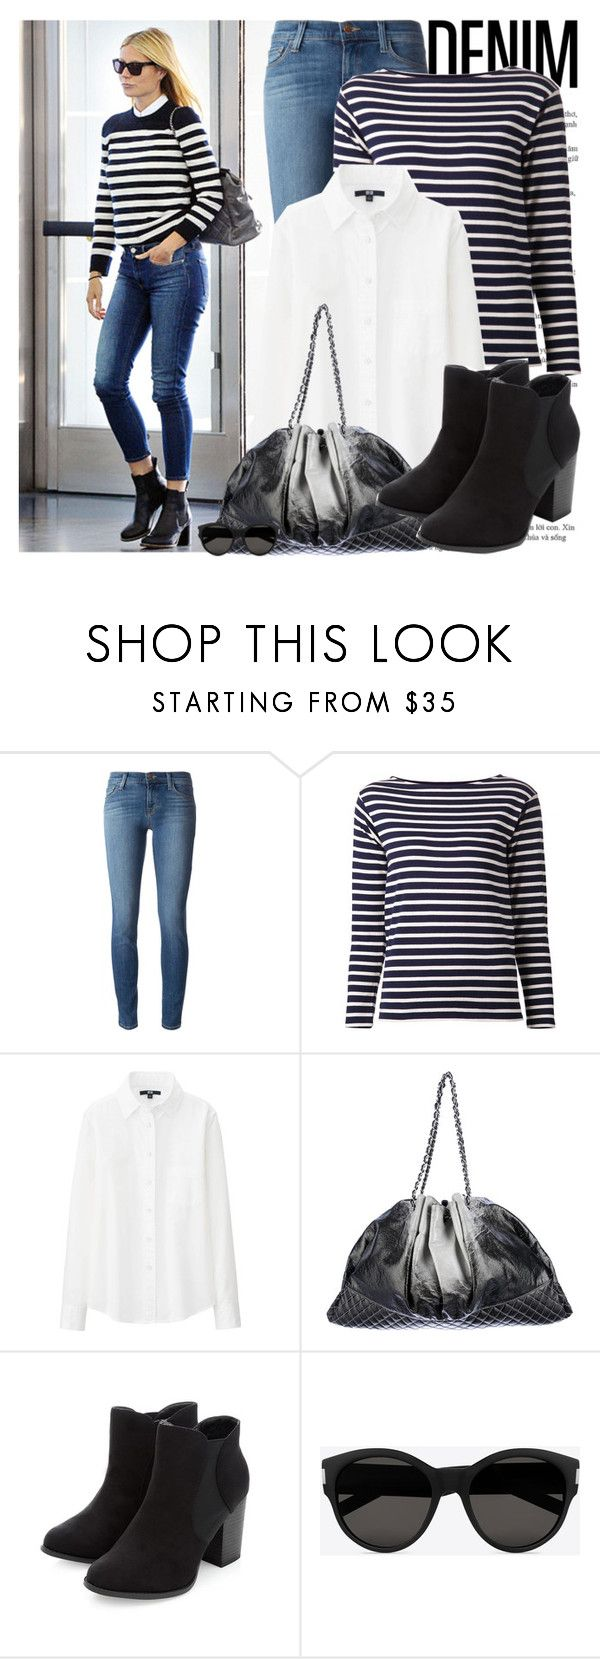 """Street Style: Gwyneth Paltrow"" by enola-pycroft ❤ liked on Polyvore featuring J Brand, Yves Saint Laurent, Uniqlo and Chanel"